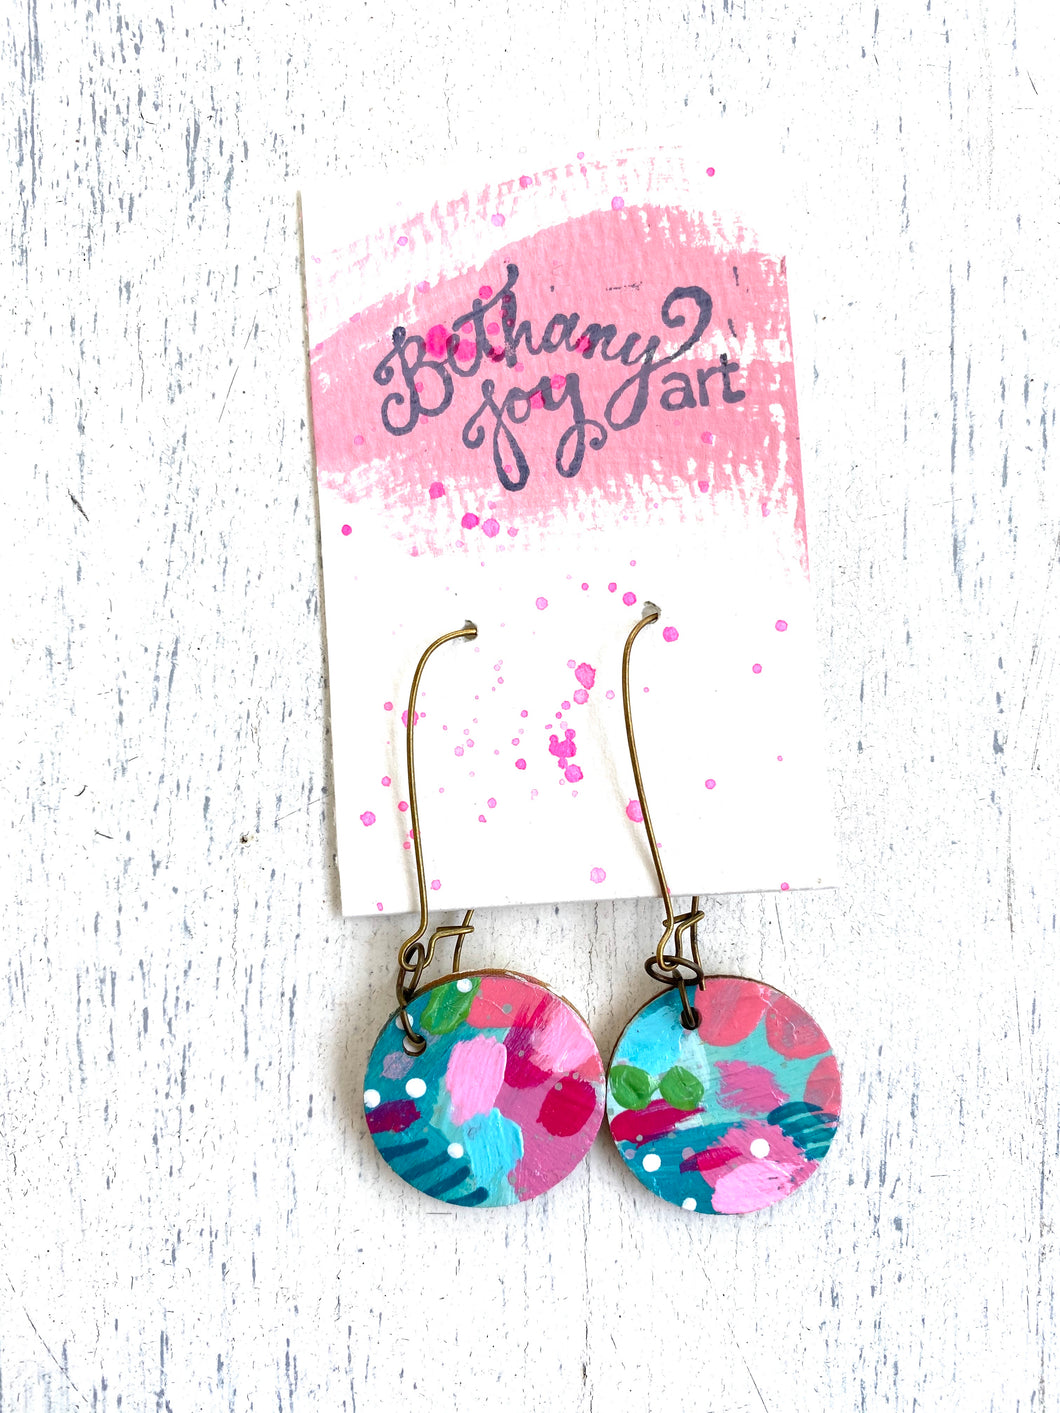 Colorful, Hand Painted Earrings 48 - Bethany Joy Art